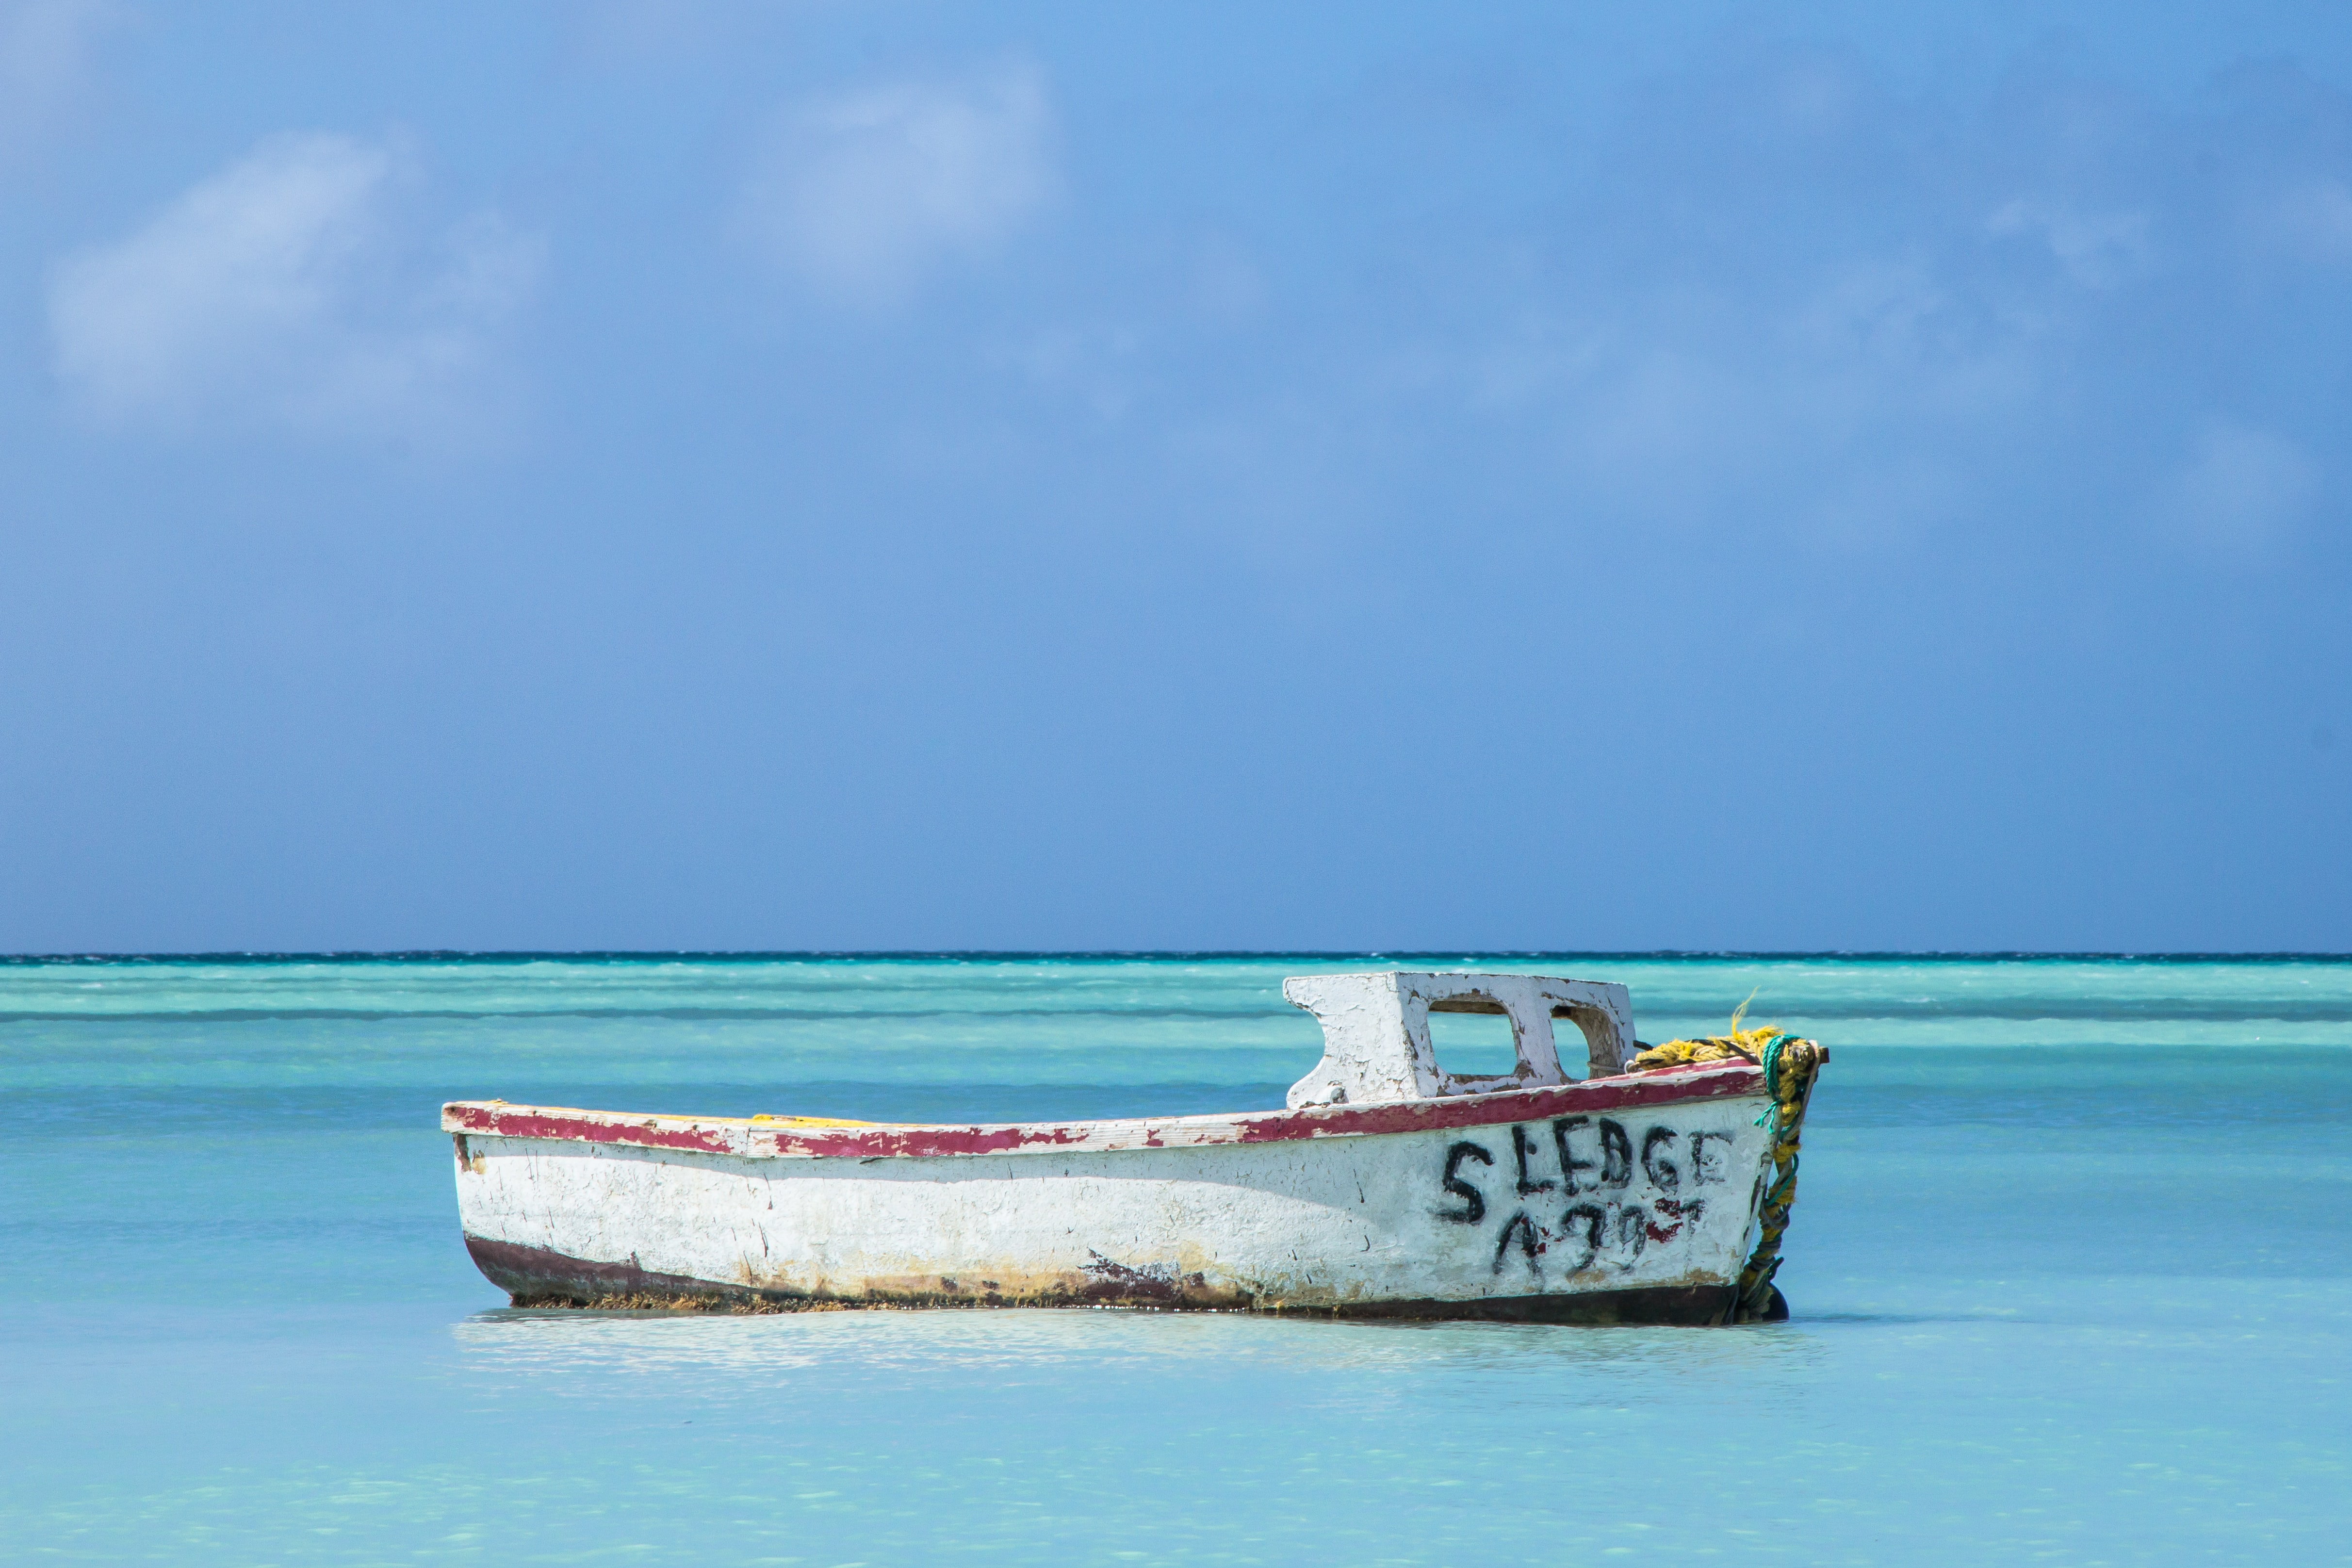 Old white boat in the turquoise waters of Palm Beach